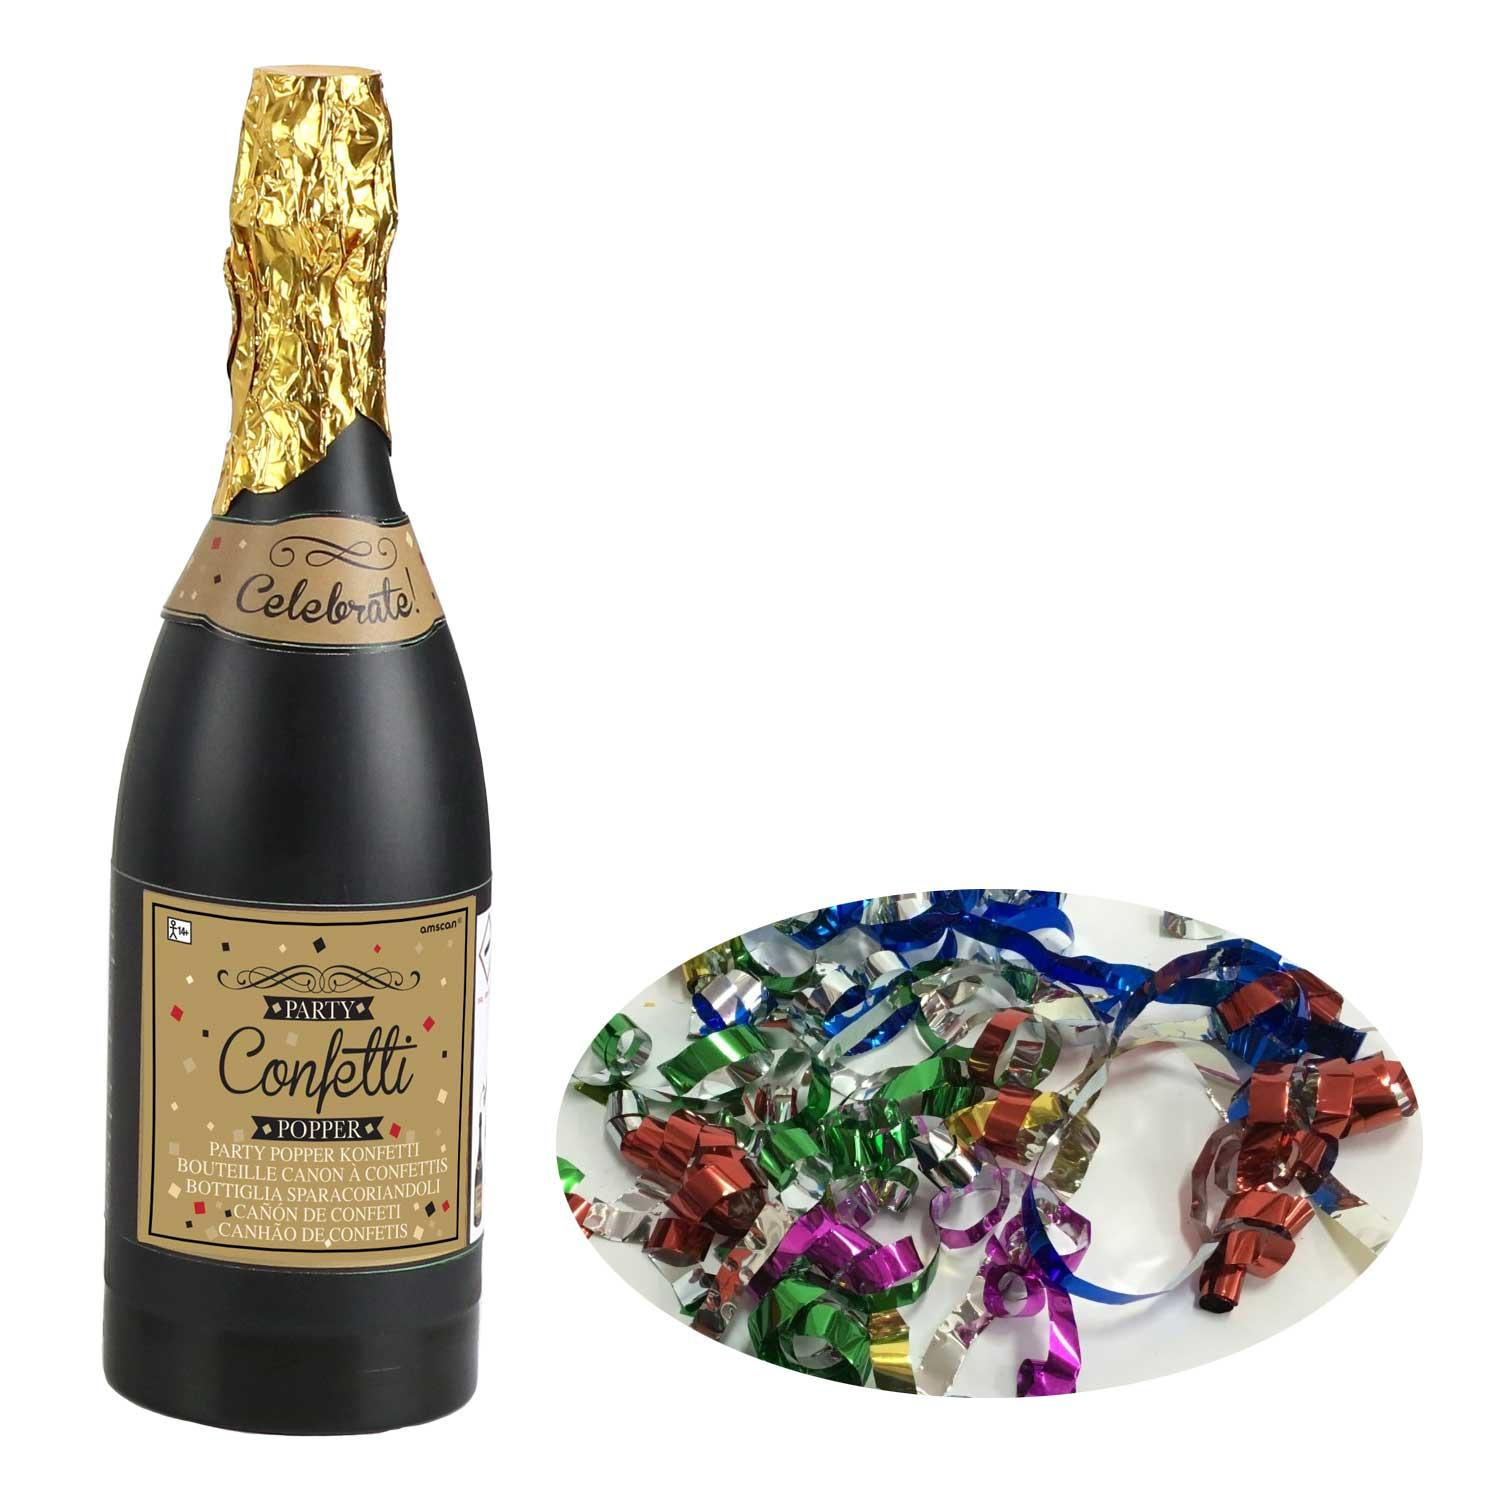 Confetti Cannon Champagne Bottle